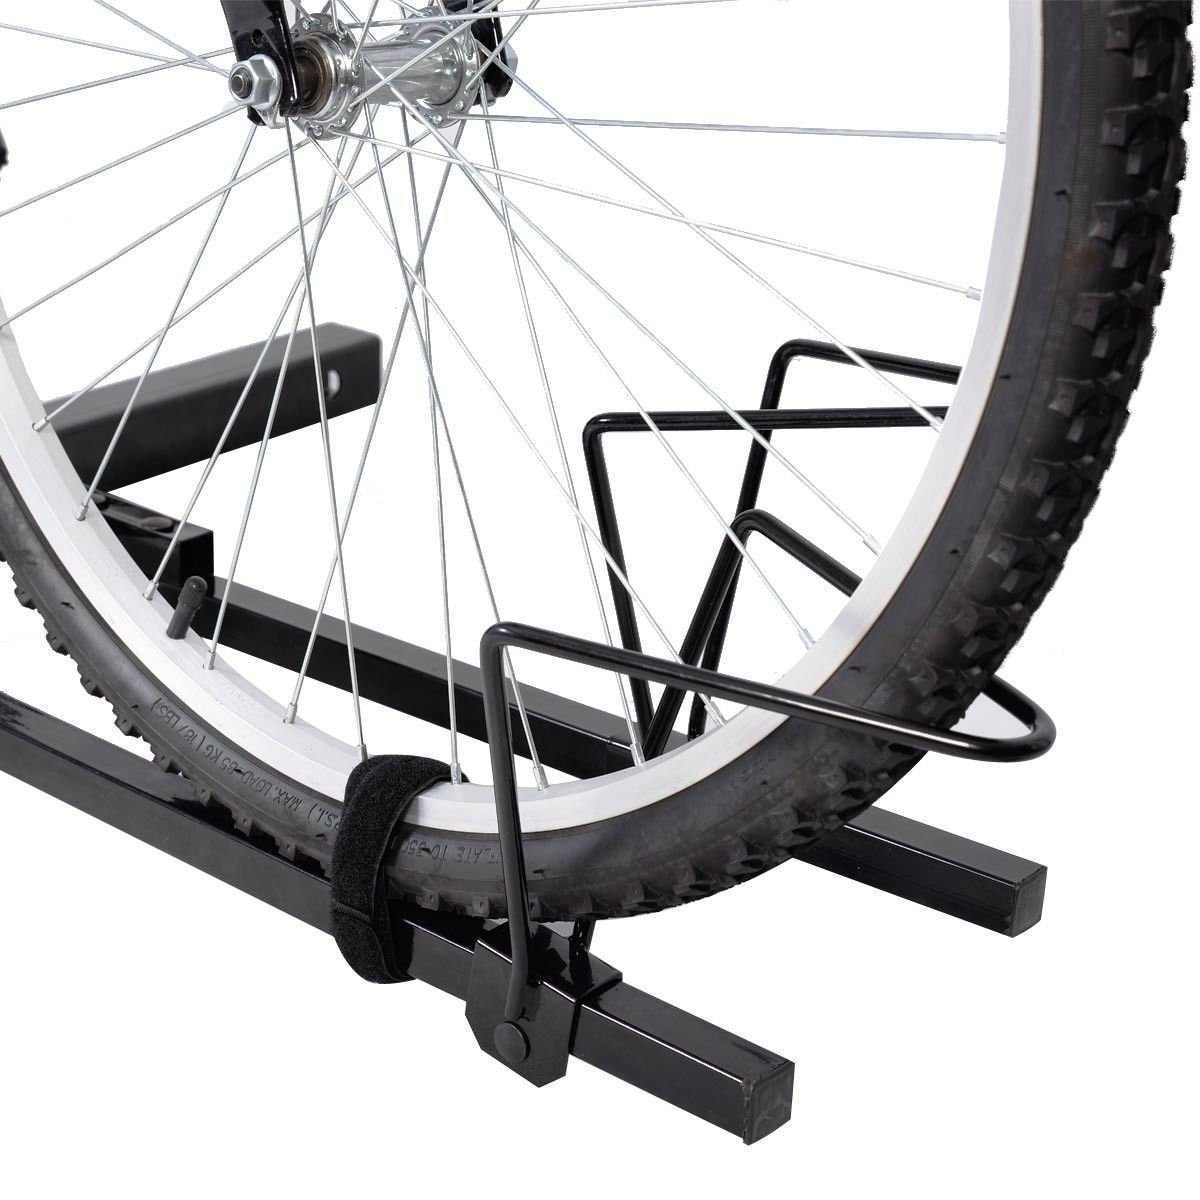 Super buy Upright Heavy Duty 2 Bike Bicycle Hitch Mount Carrier Platform Rack Truck SUV by Super buy (Image #4)